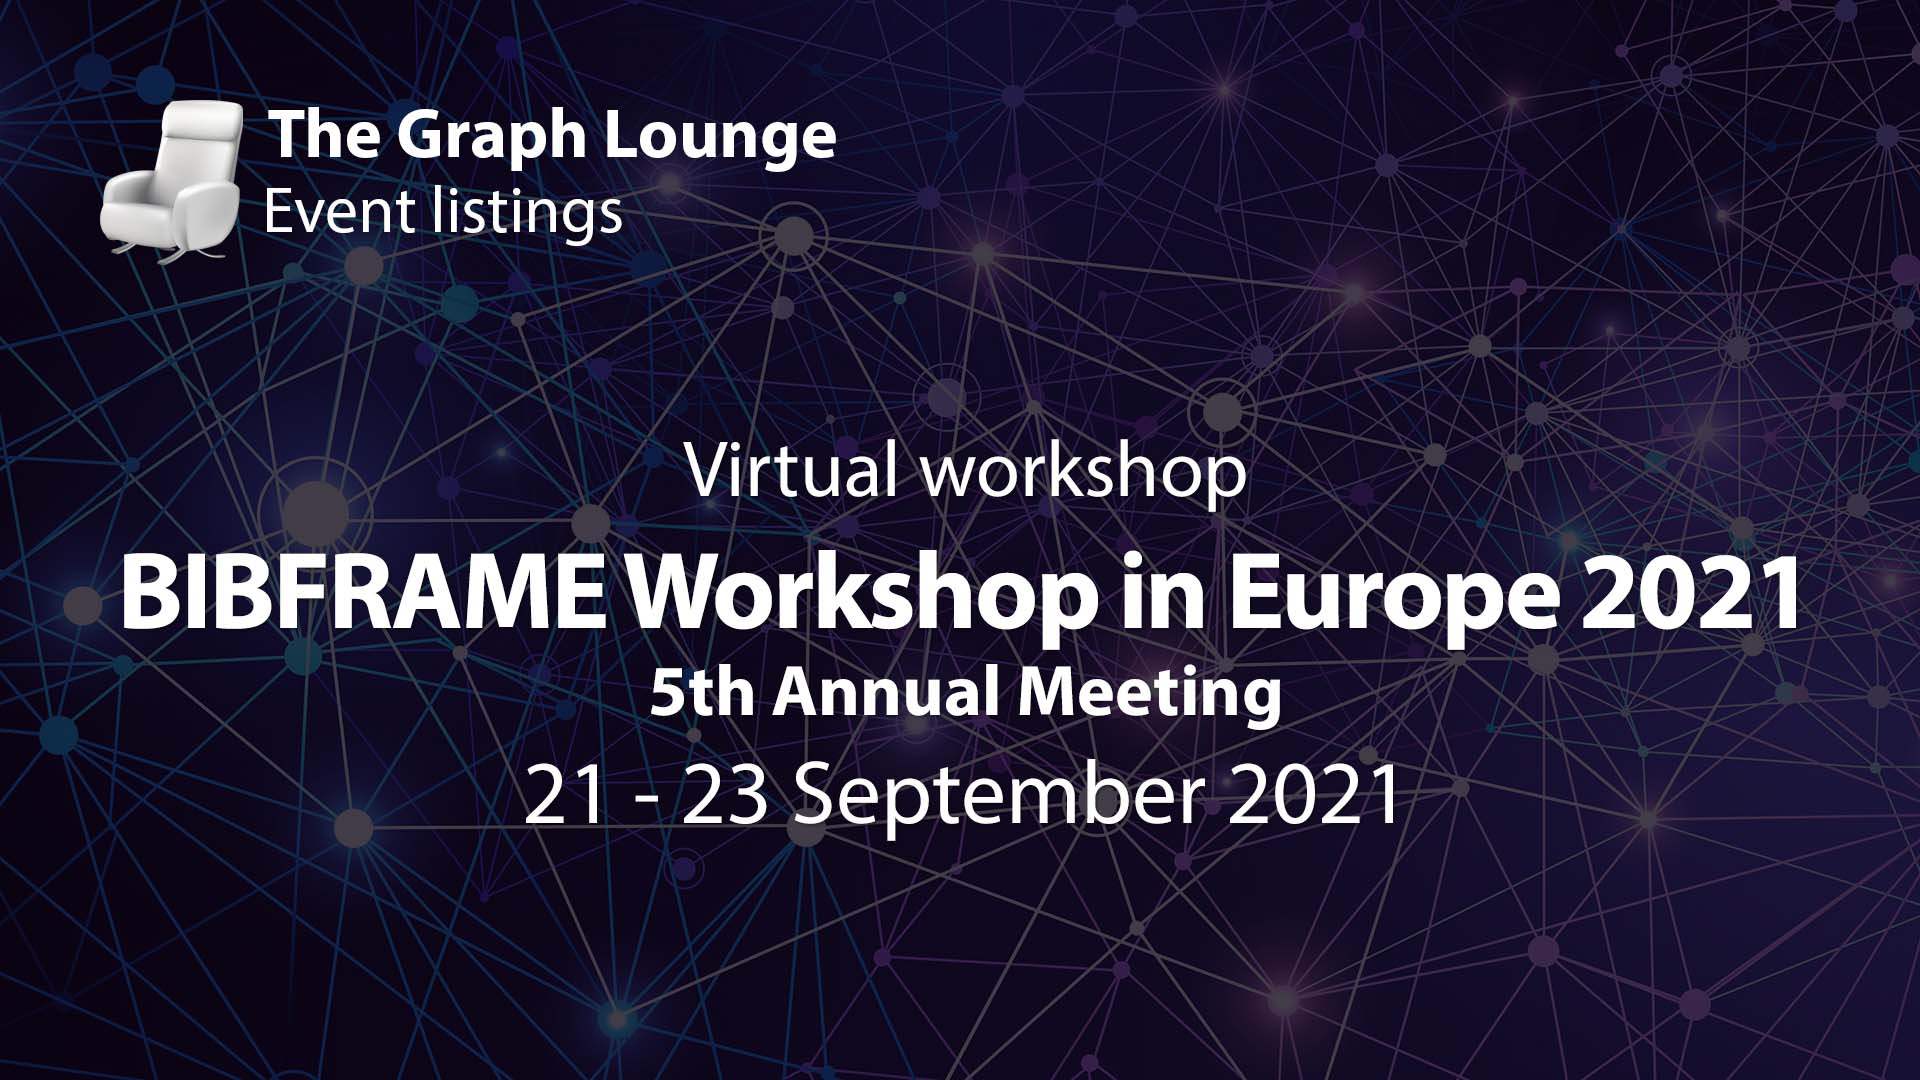 BIBFRAME Workshop in Europe 2021 (5th Annual Meeting)